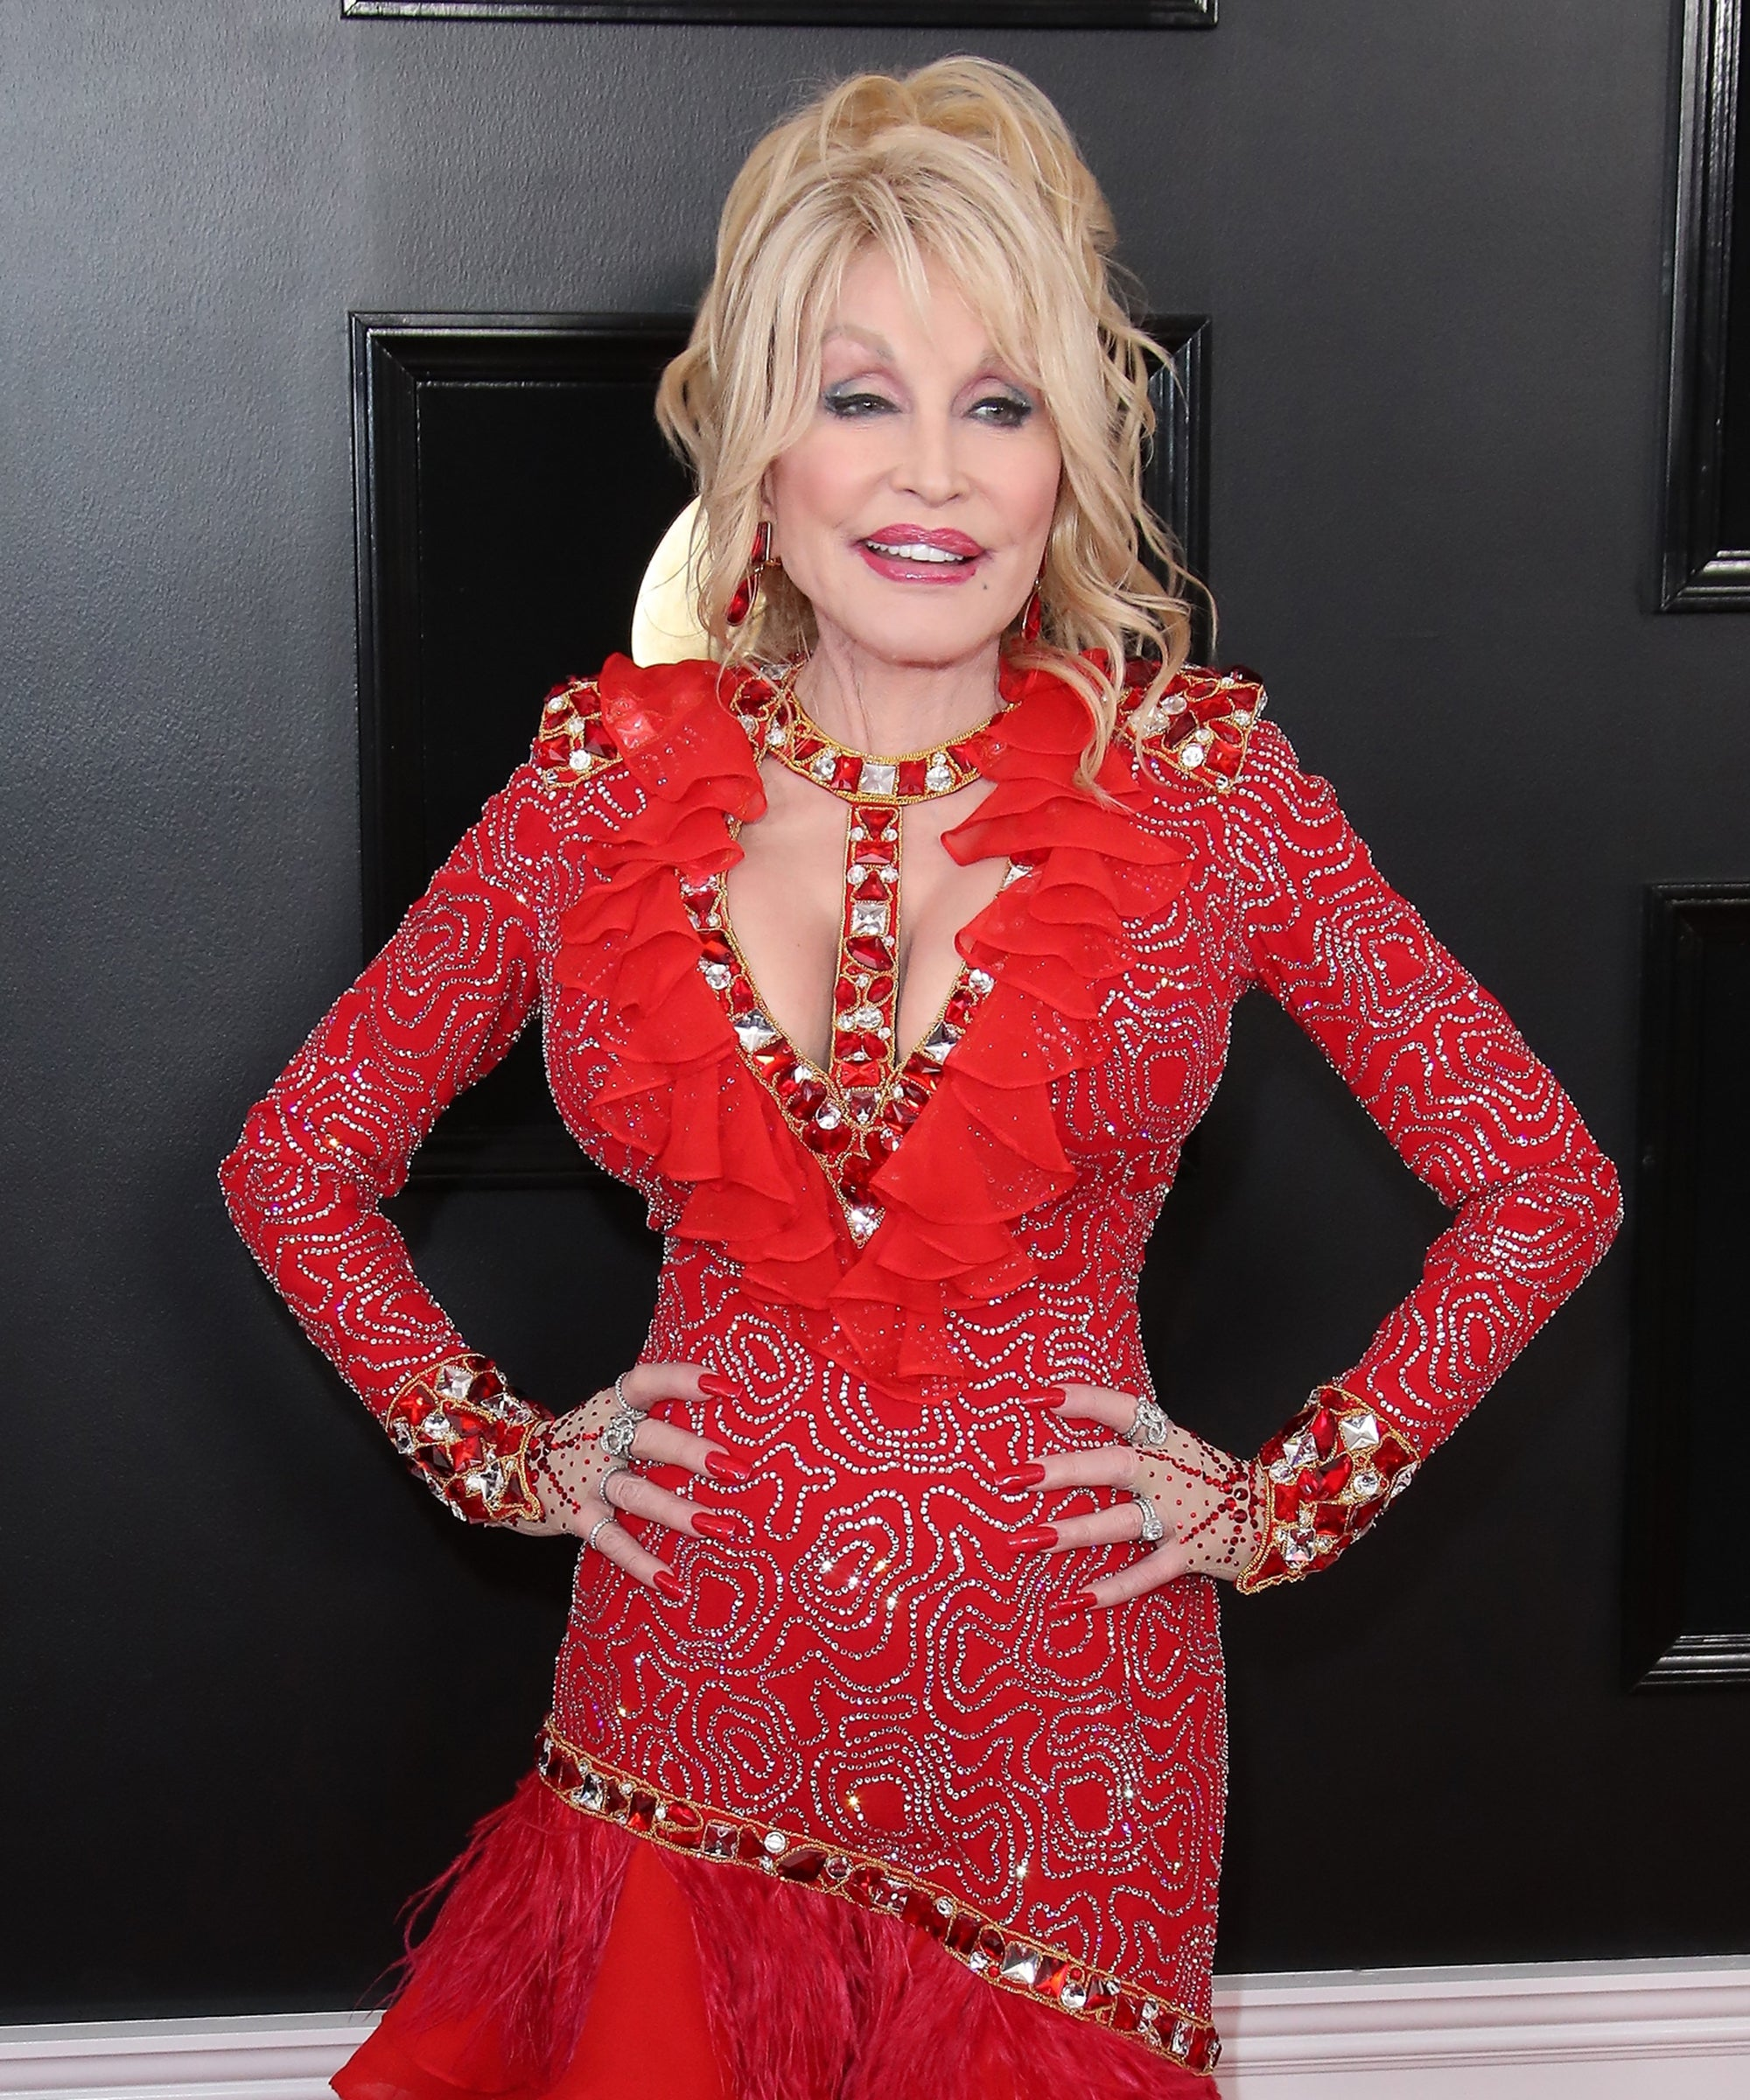 dolly parton challenge - photo #38